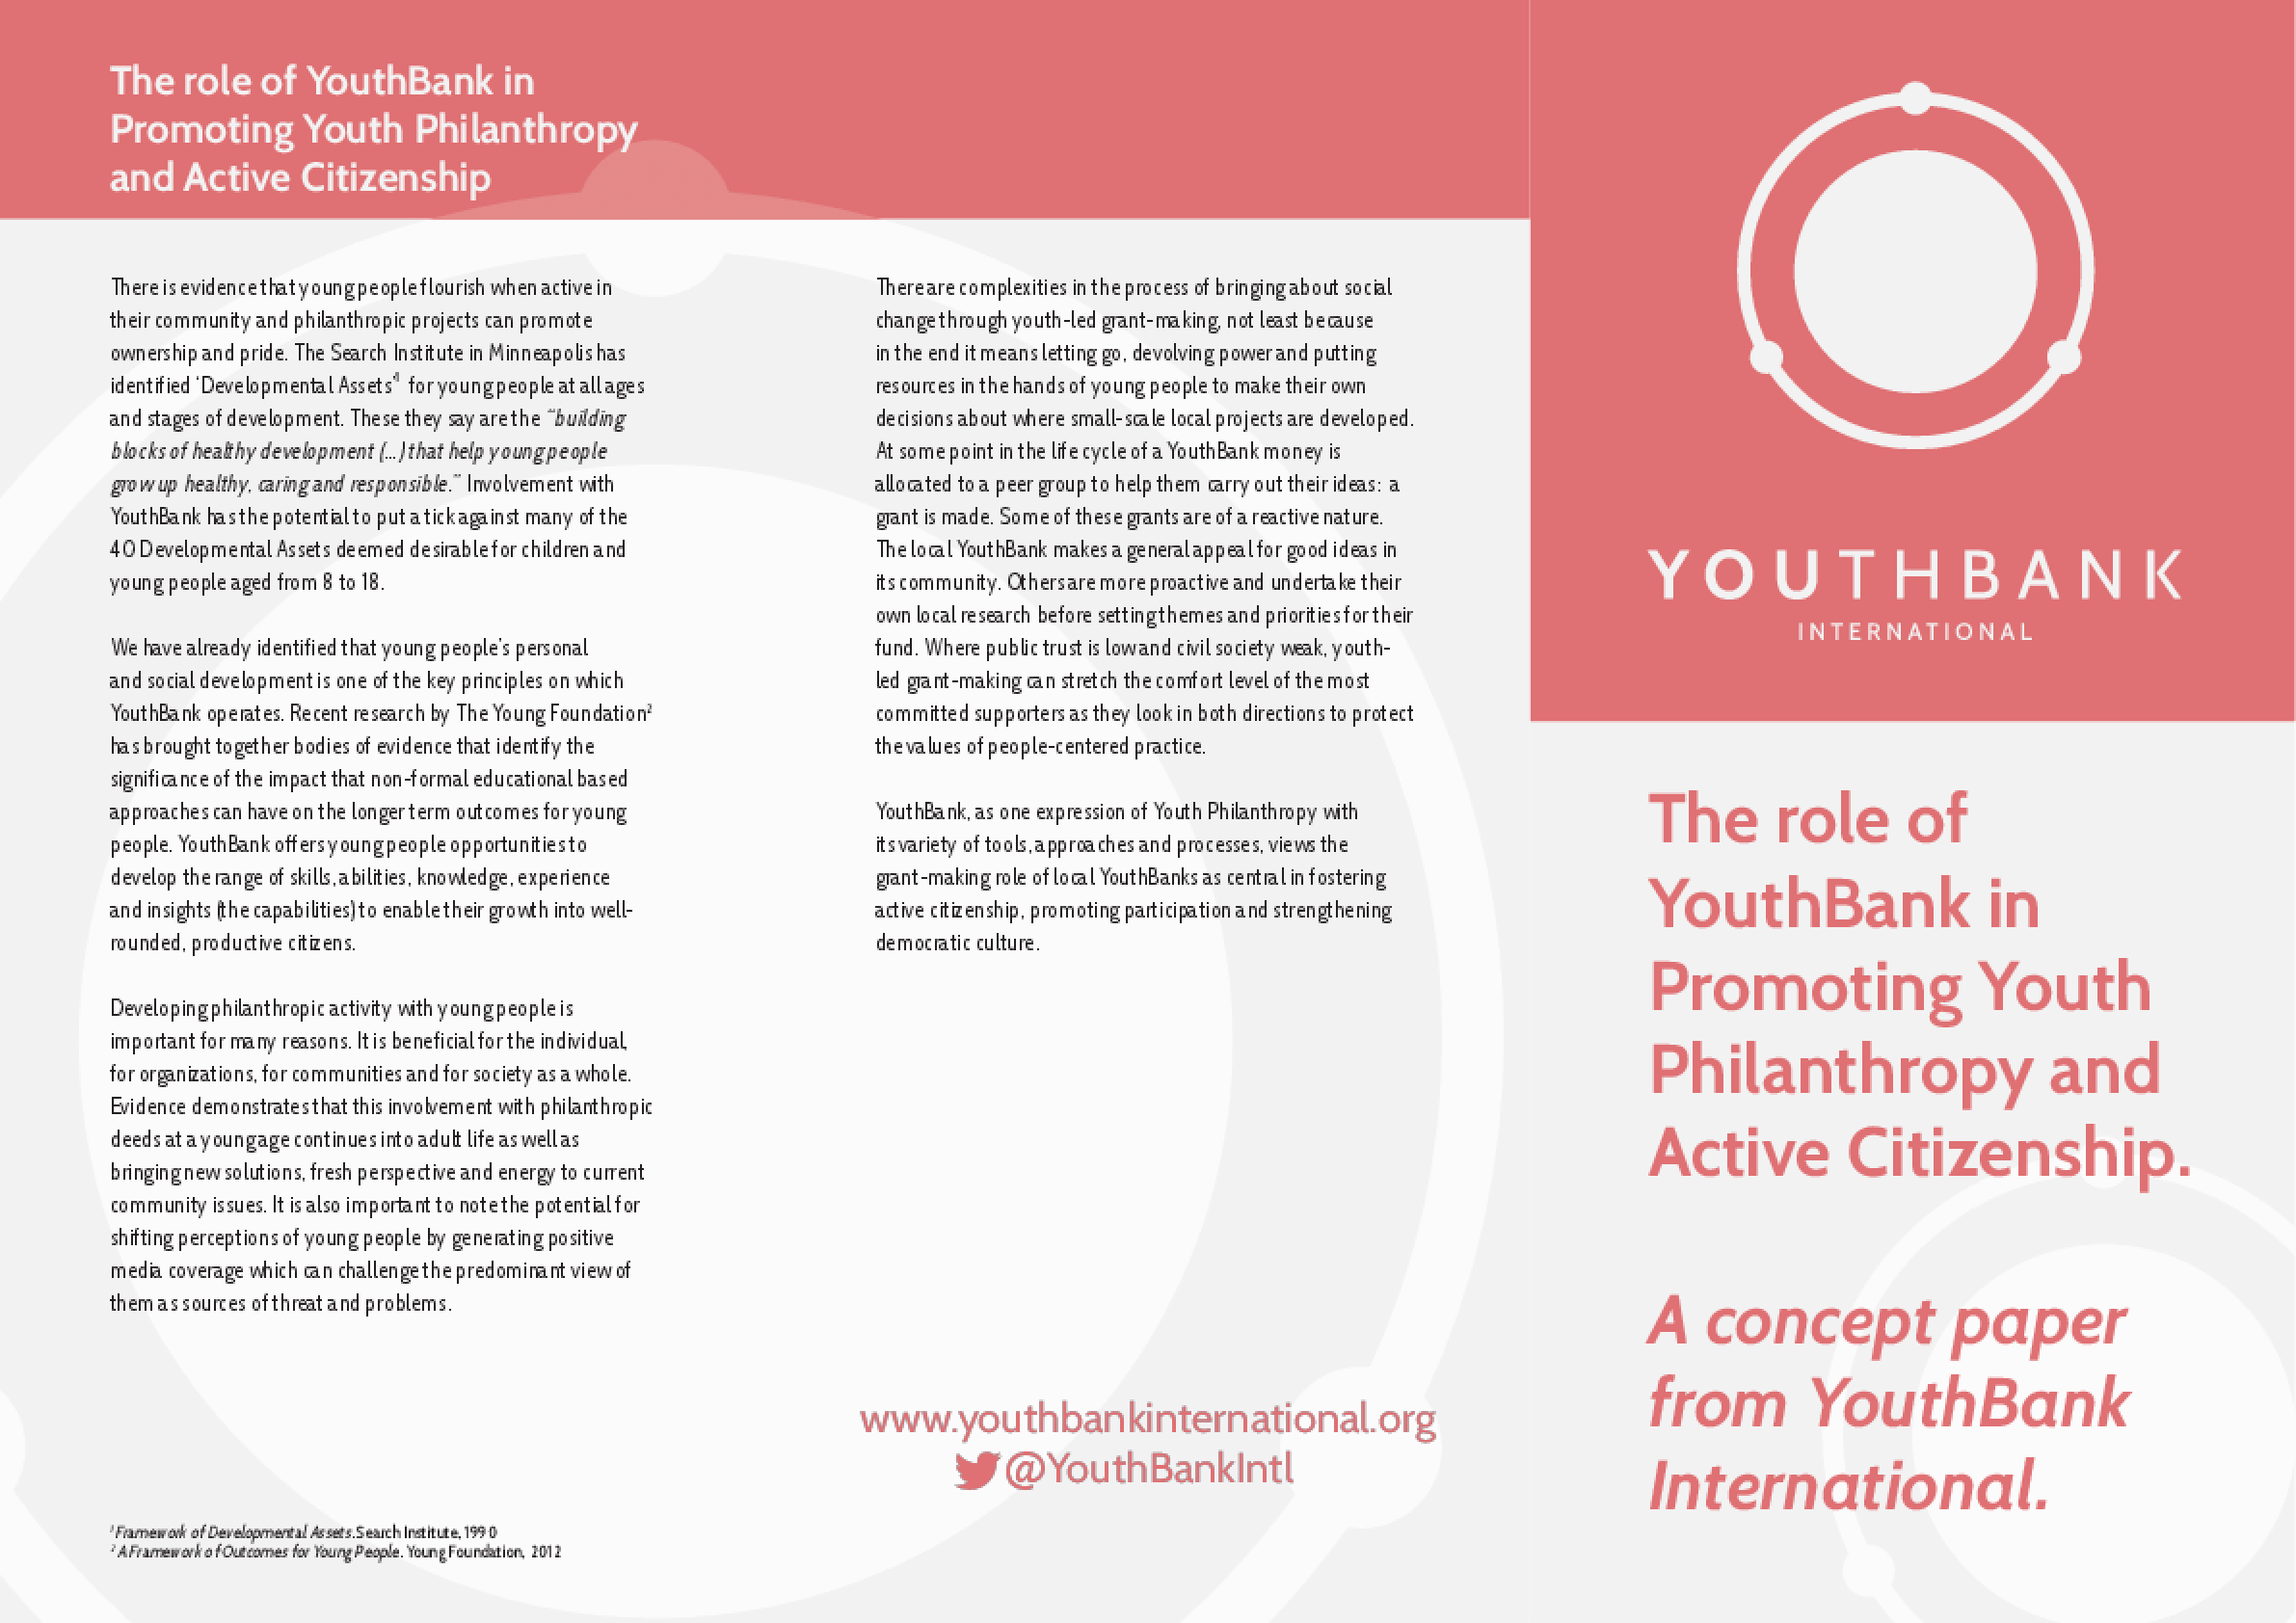 The Role of YouthBank in Promoting Youth Philanthropy and Active Citizenship